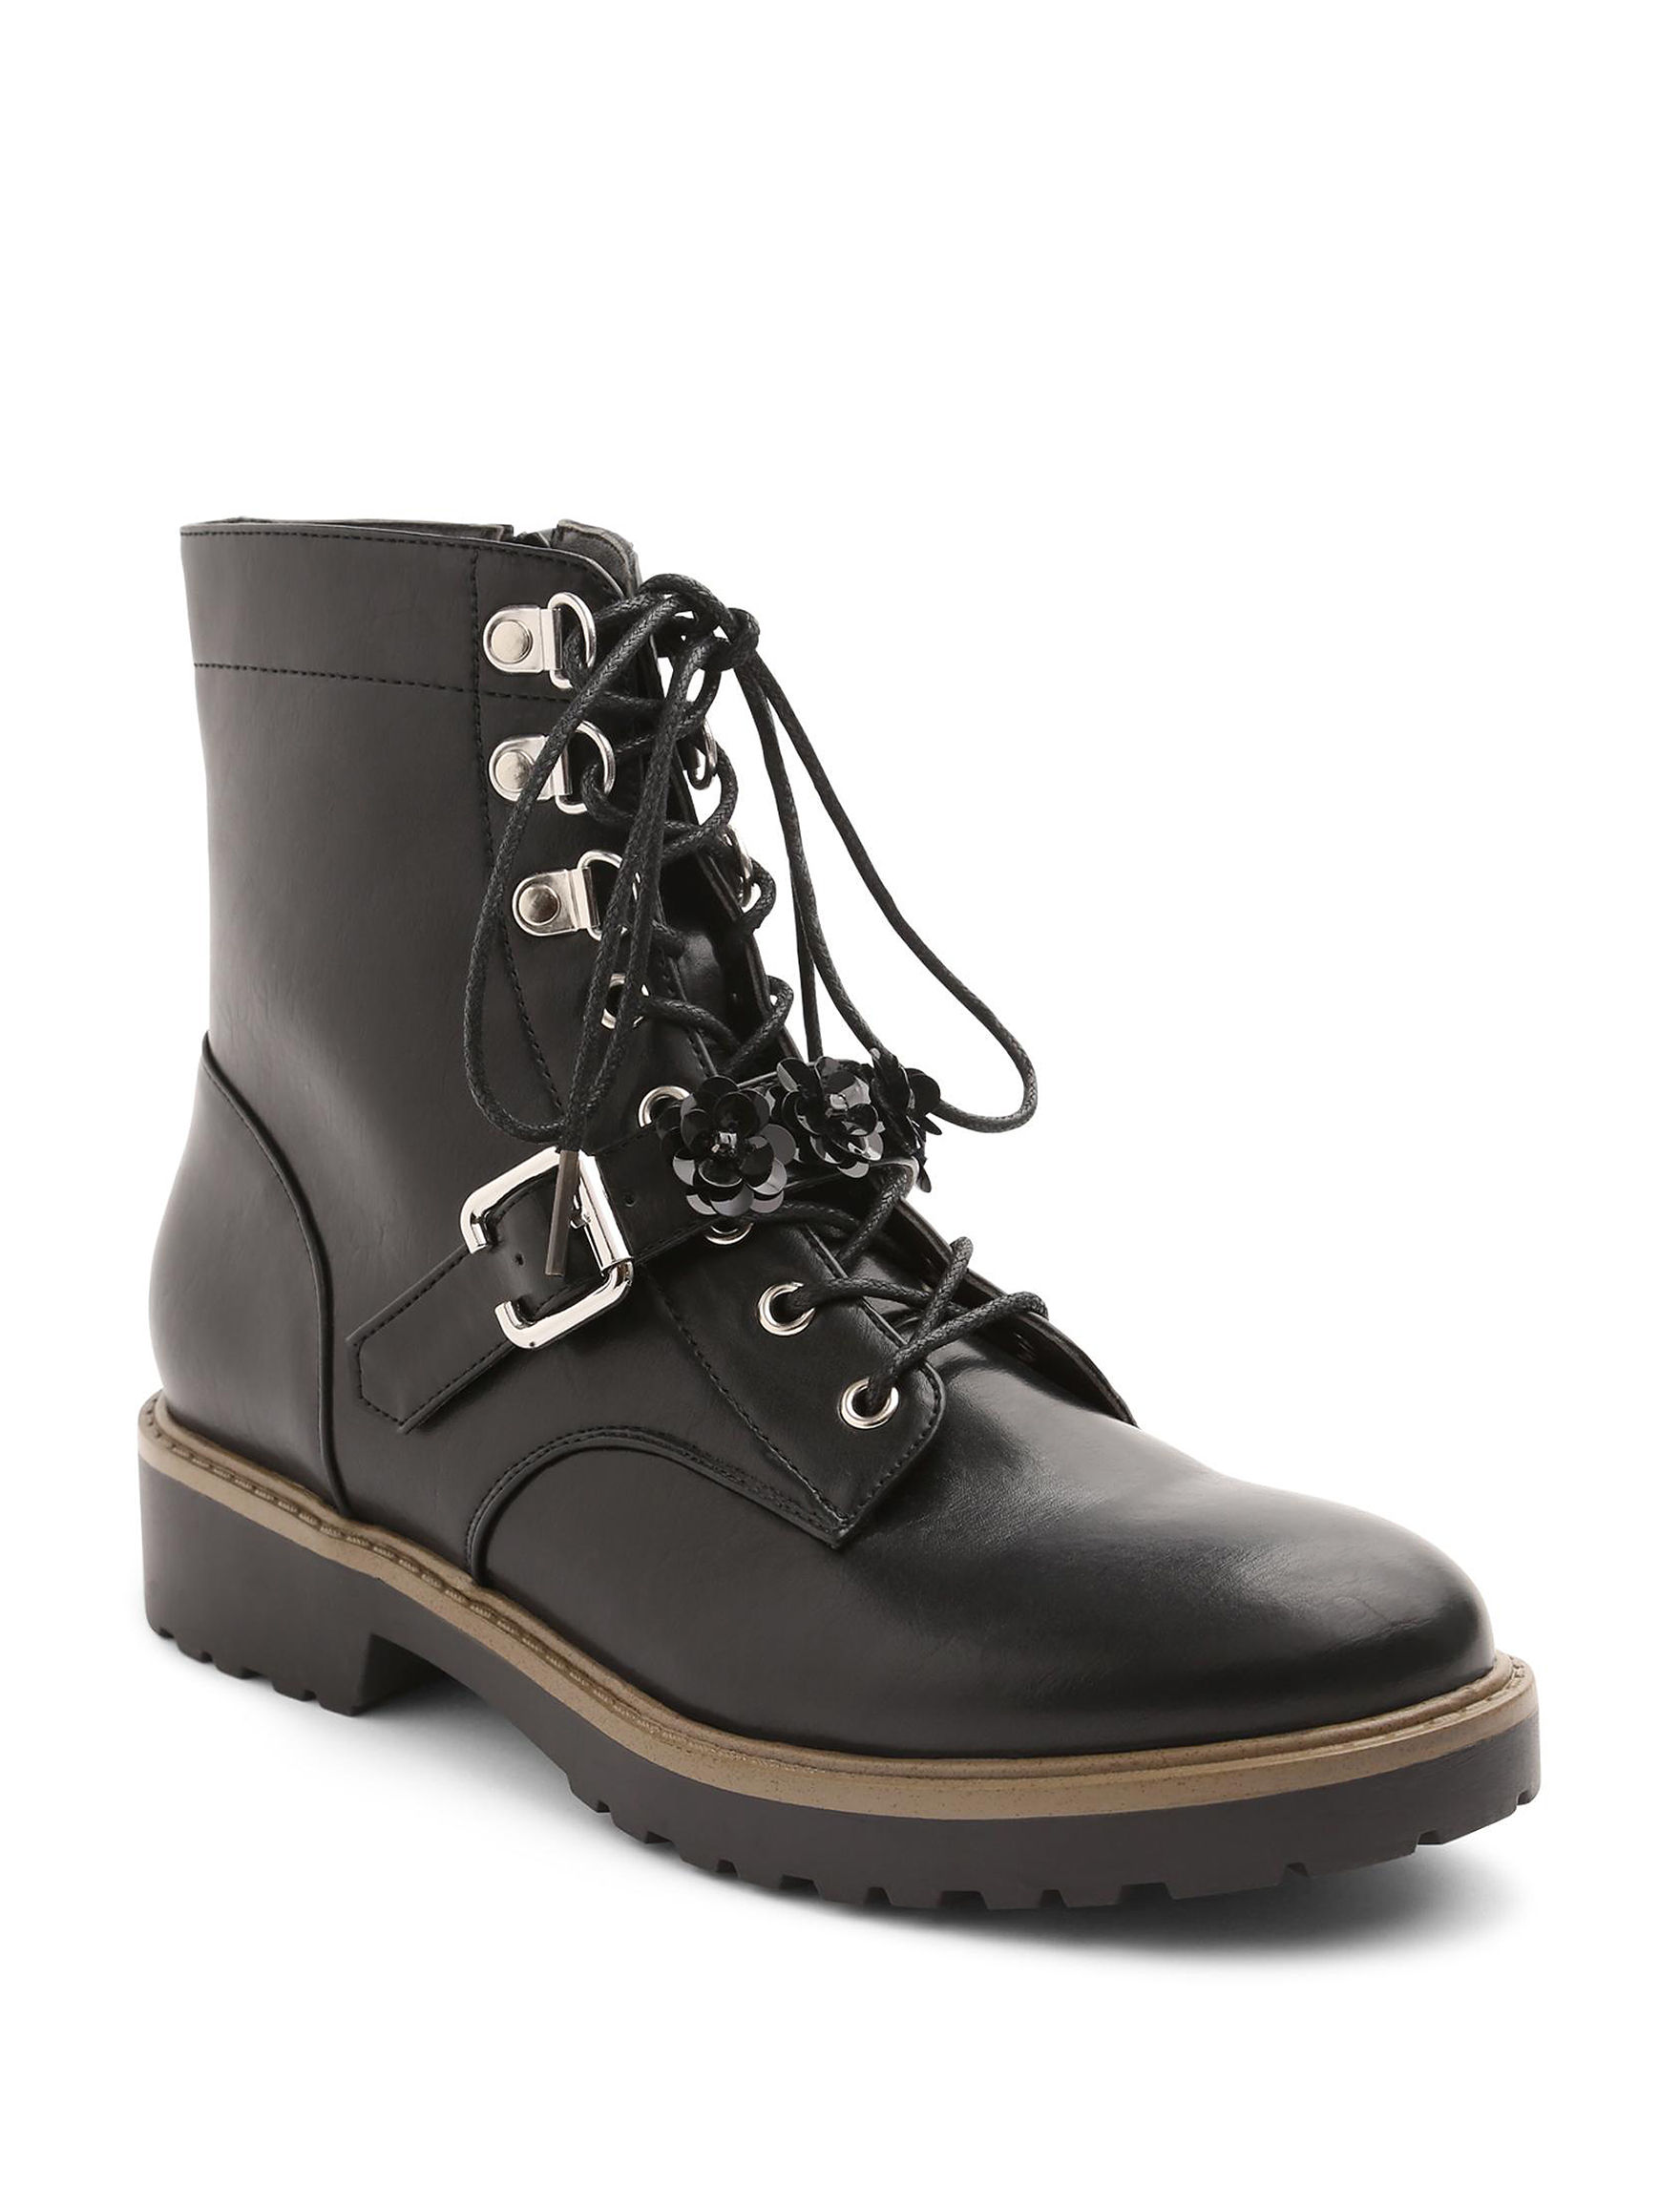 XOXO Black Ankle Boots & Booties